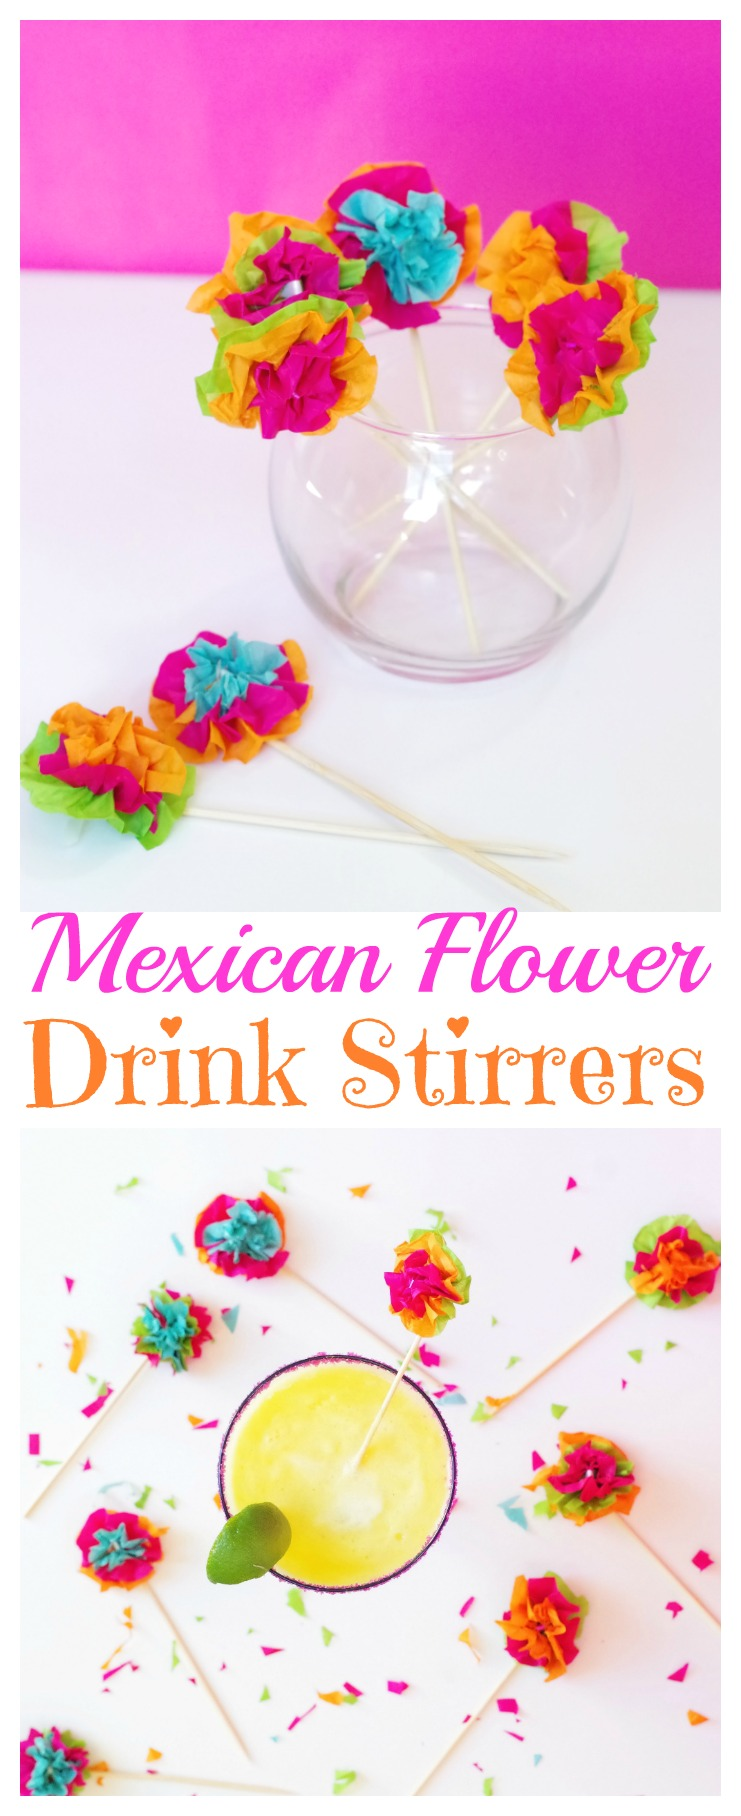 Mexican Flower Drink Stirrers for Cinco De Mayo and parties